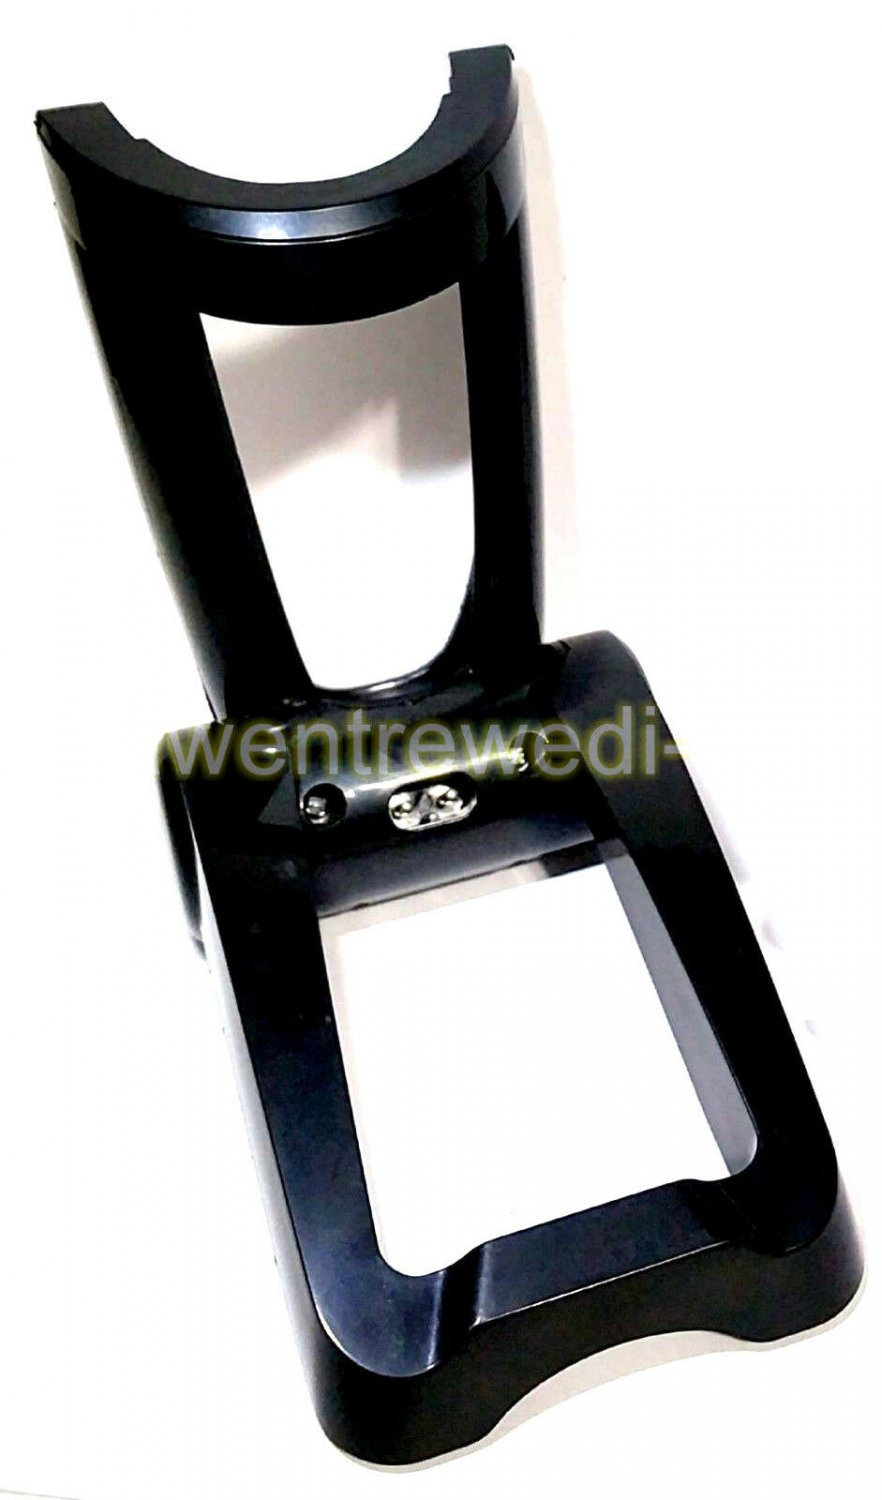 For Philips Norelco RQ12 3D Charger Stand Only 1250X 1255X 1260X 1280X 1290X